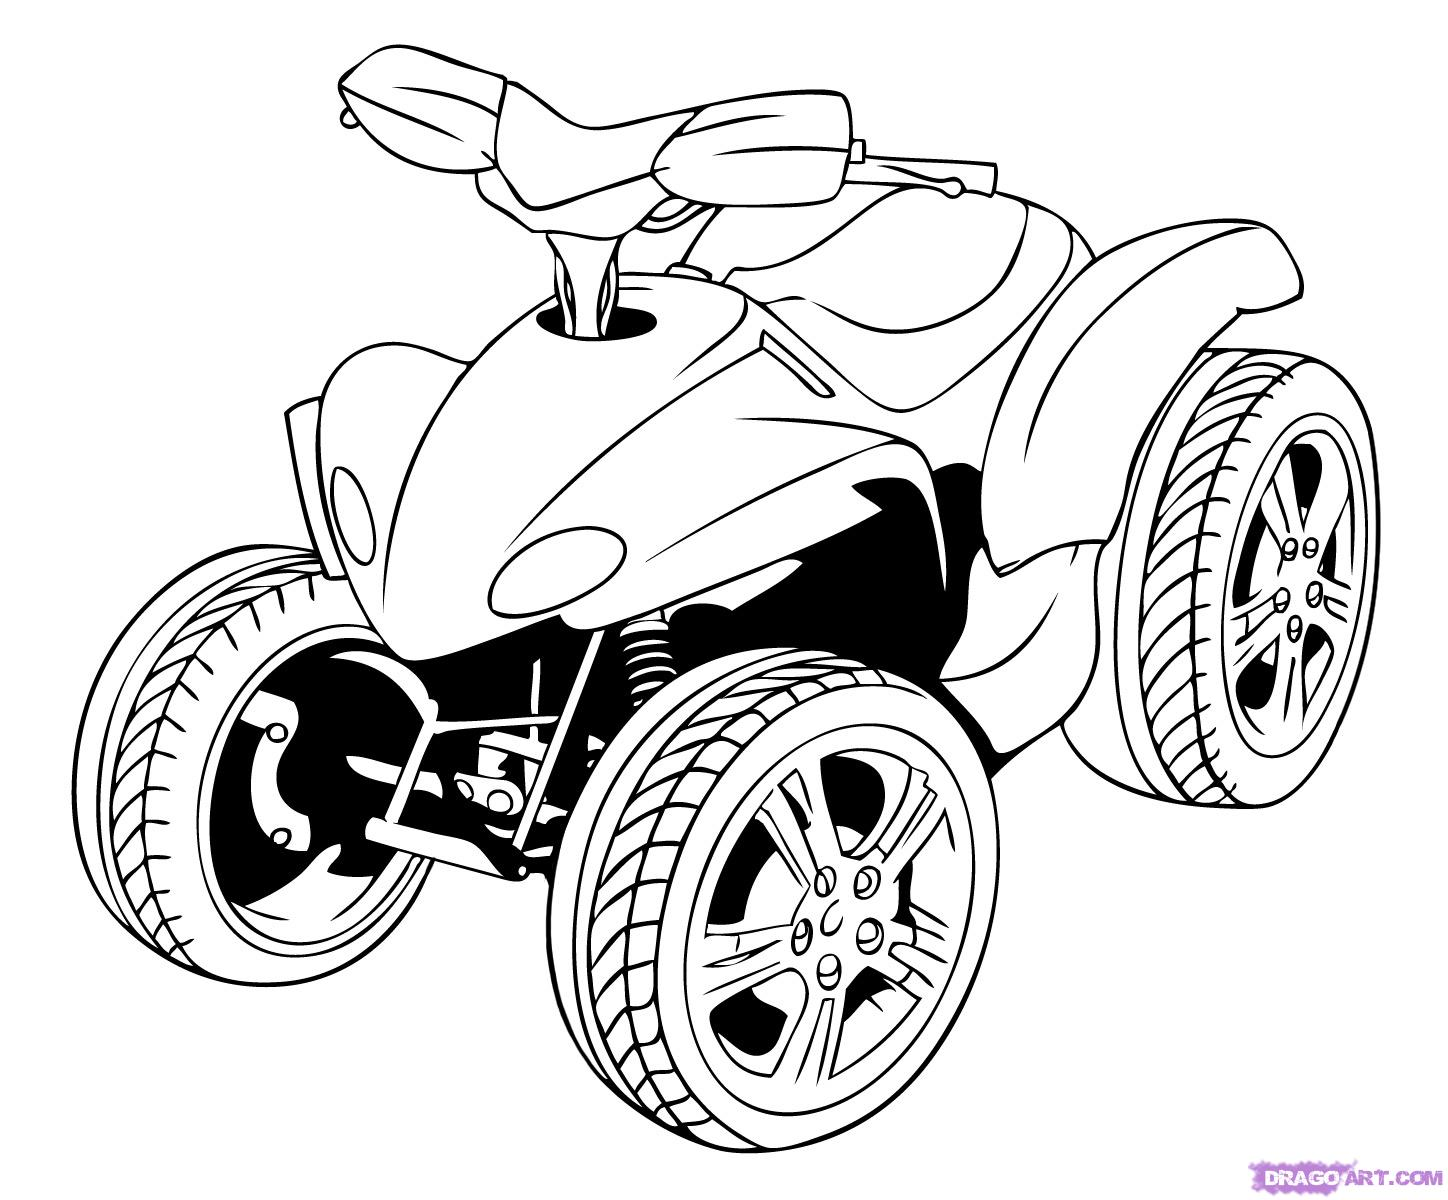 Motorcycle drawing simple at getdrawings free for personal use